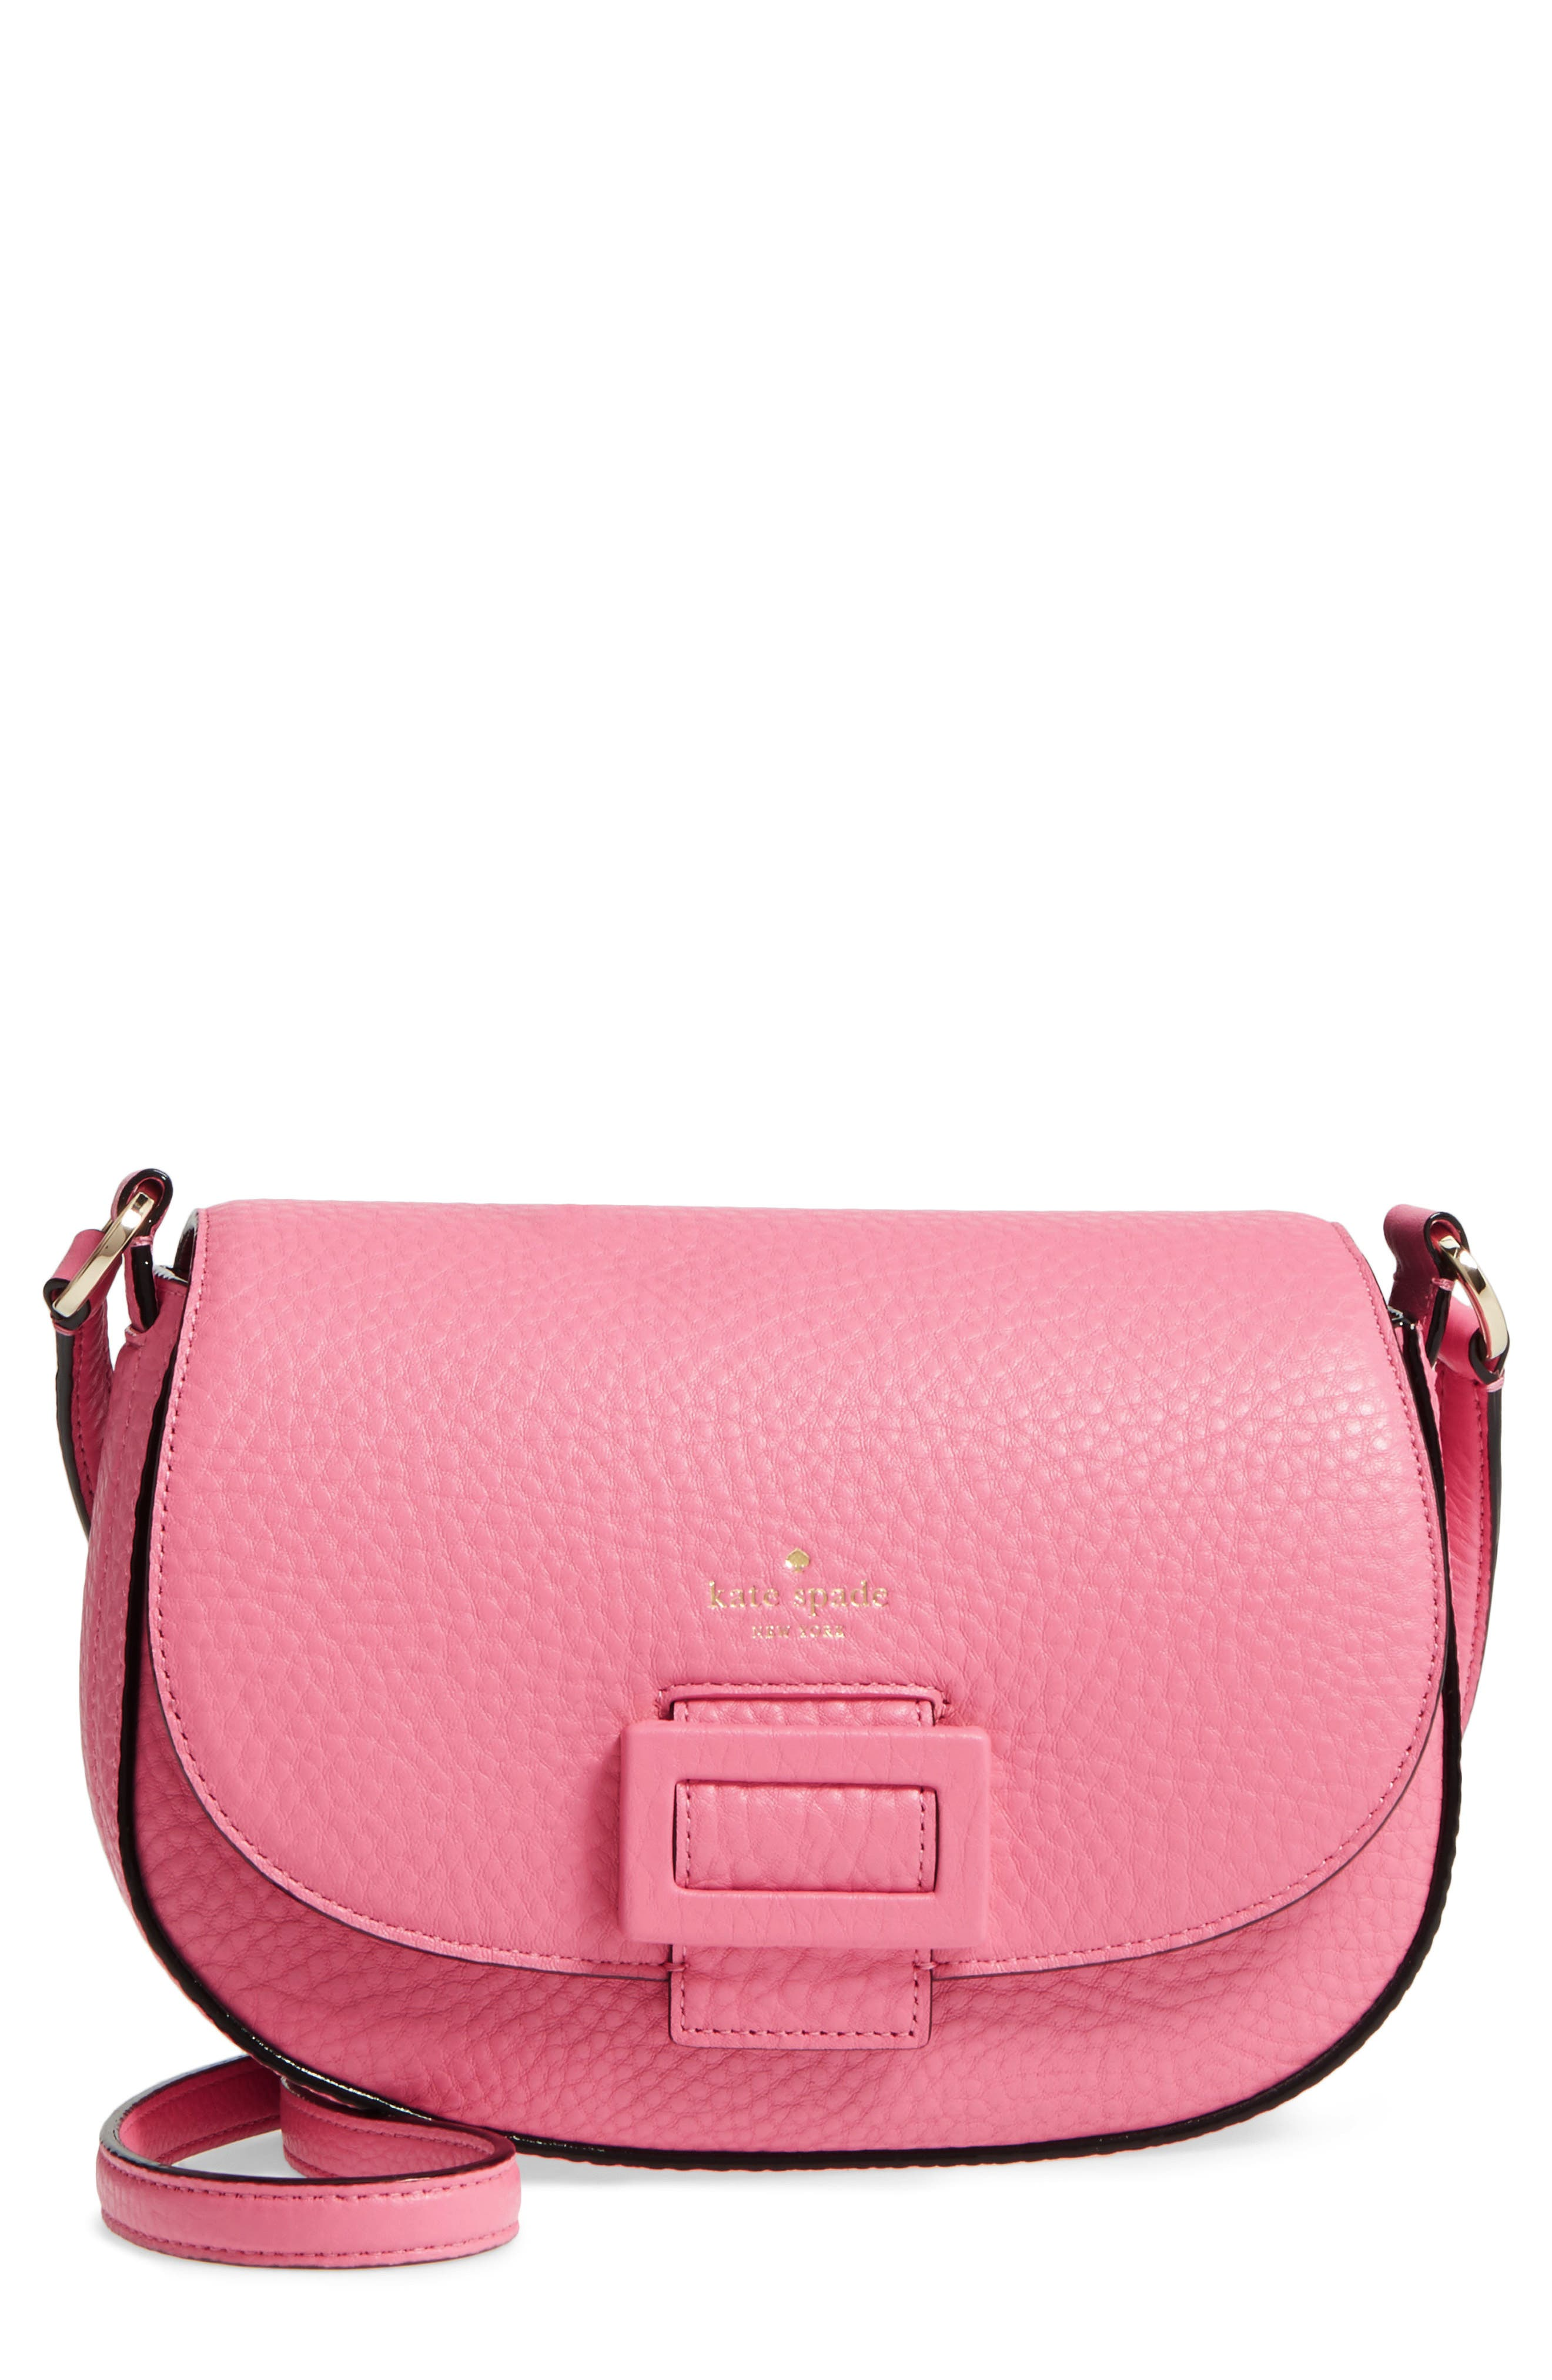 Alternate Image 1 Selected - kate spade new york carlyle street - kallie leather saddle bag